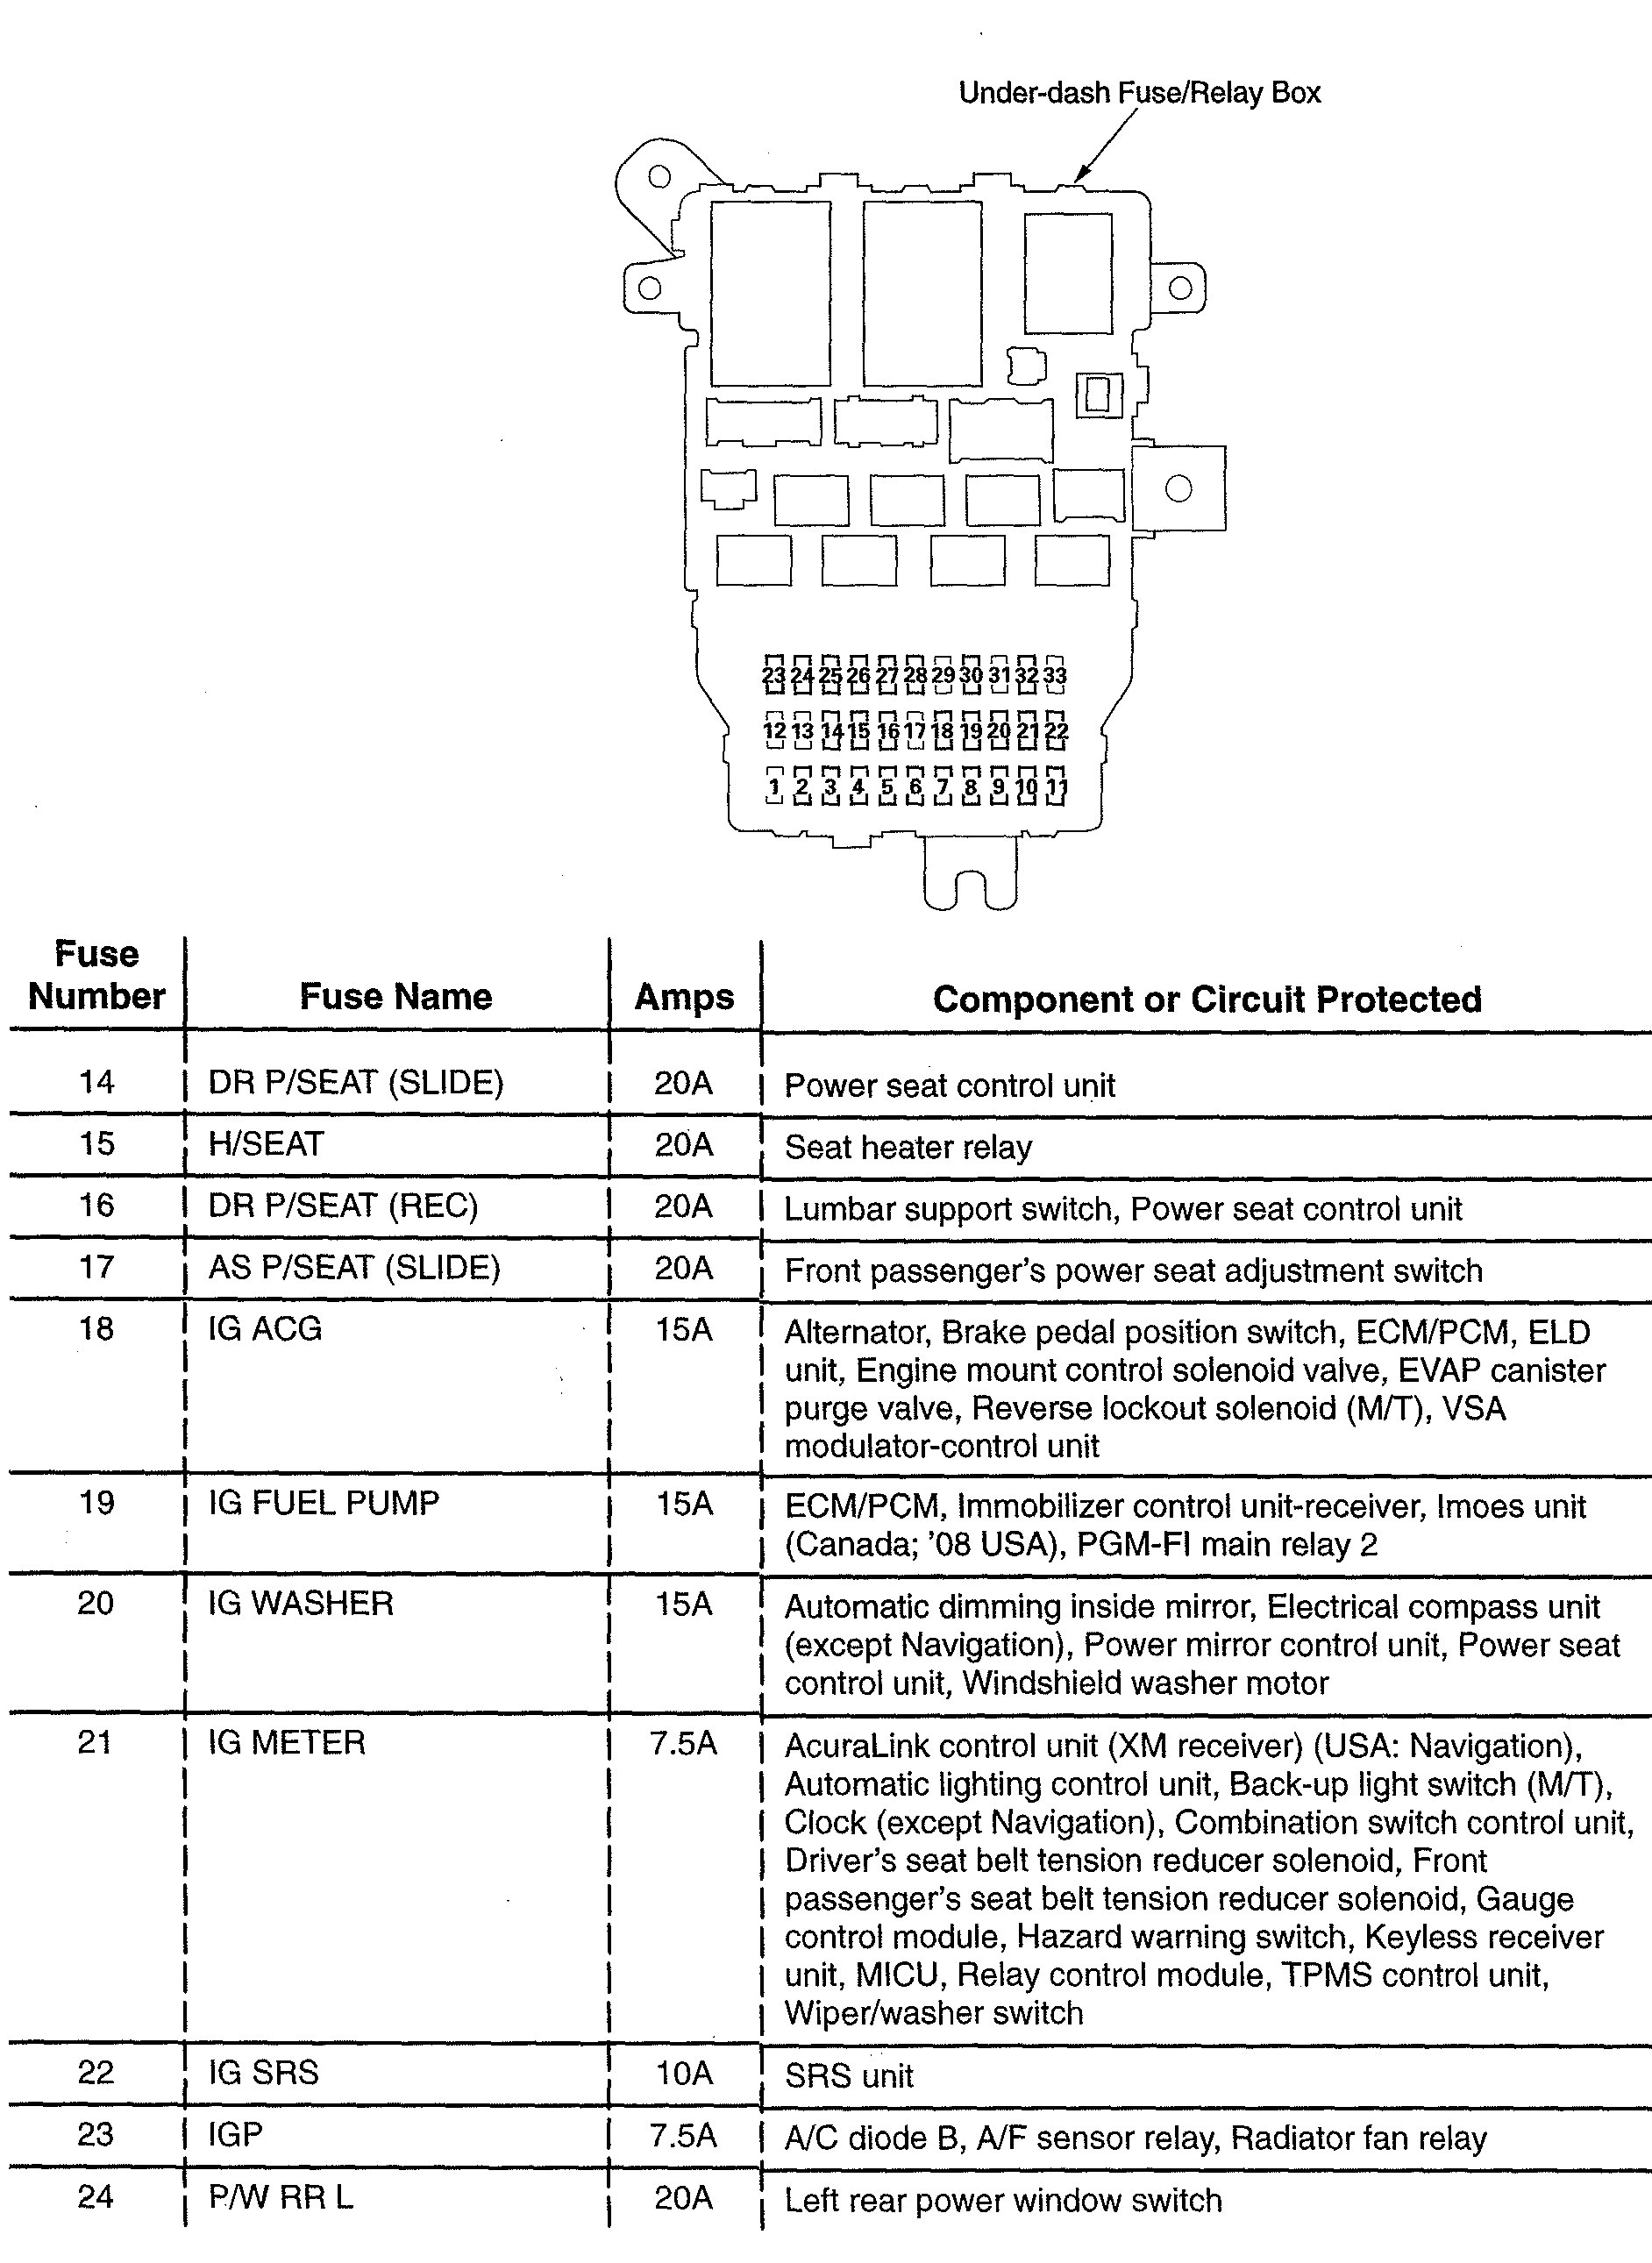 2005 acura tl fuse box diagram 2006 acura tl fuse box diagram #11